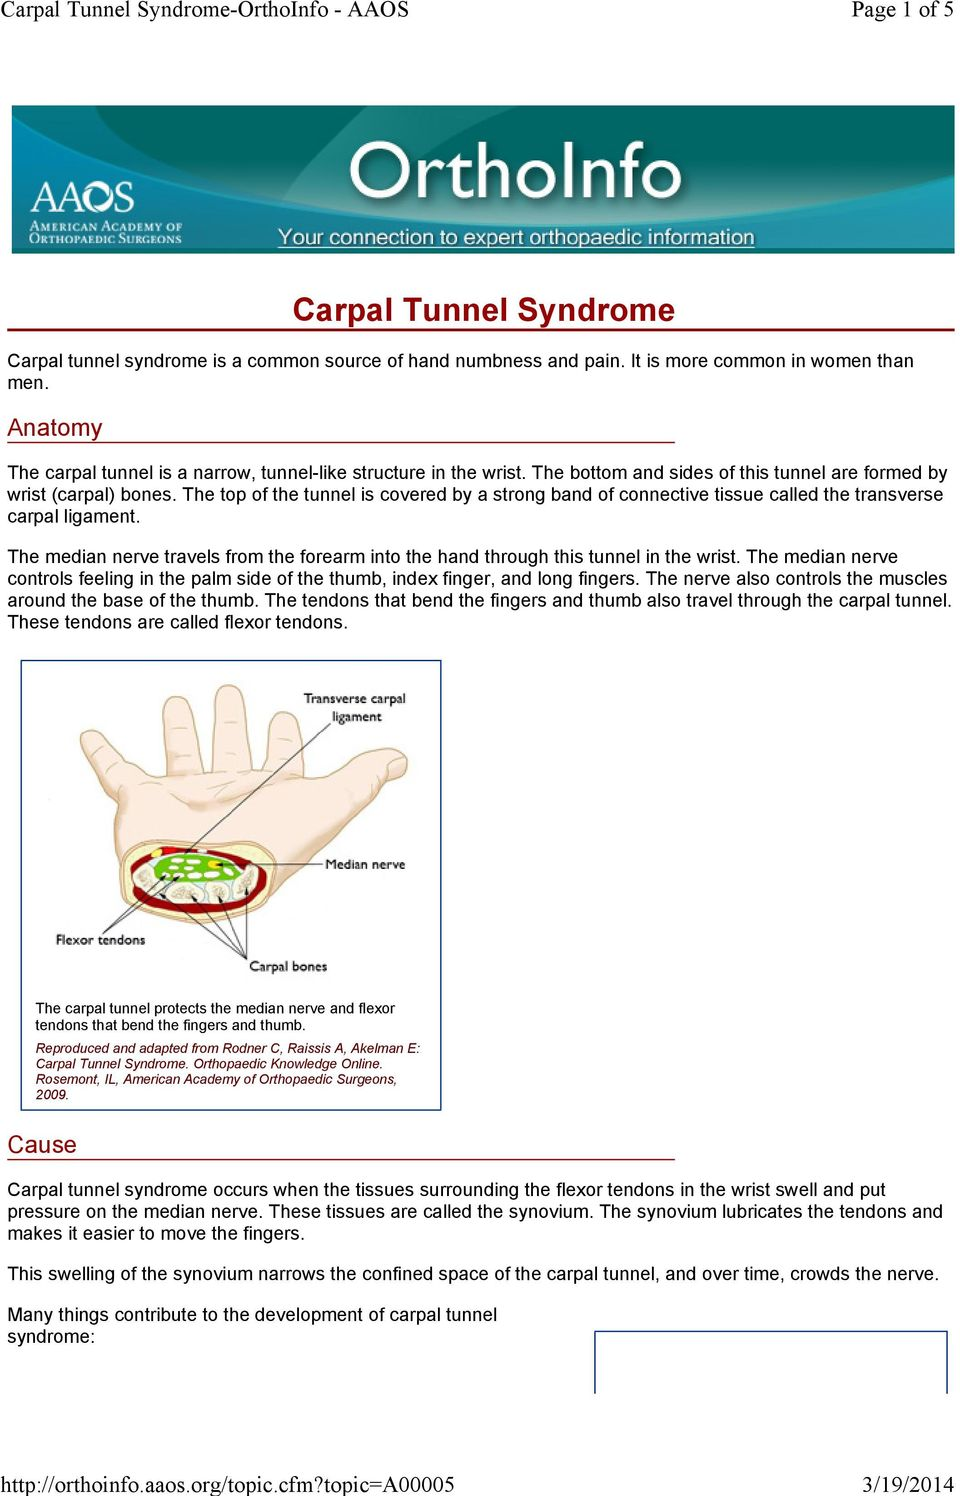 The top of the tunnel is covered by a strong band of connective tissue called the transverse carpal ligament. The median nerve travels from the forearm into the hand through this tunnel in the wrist.